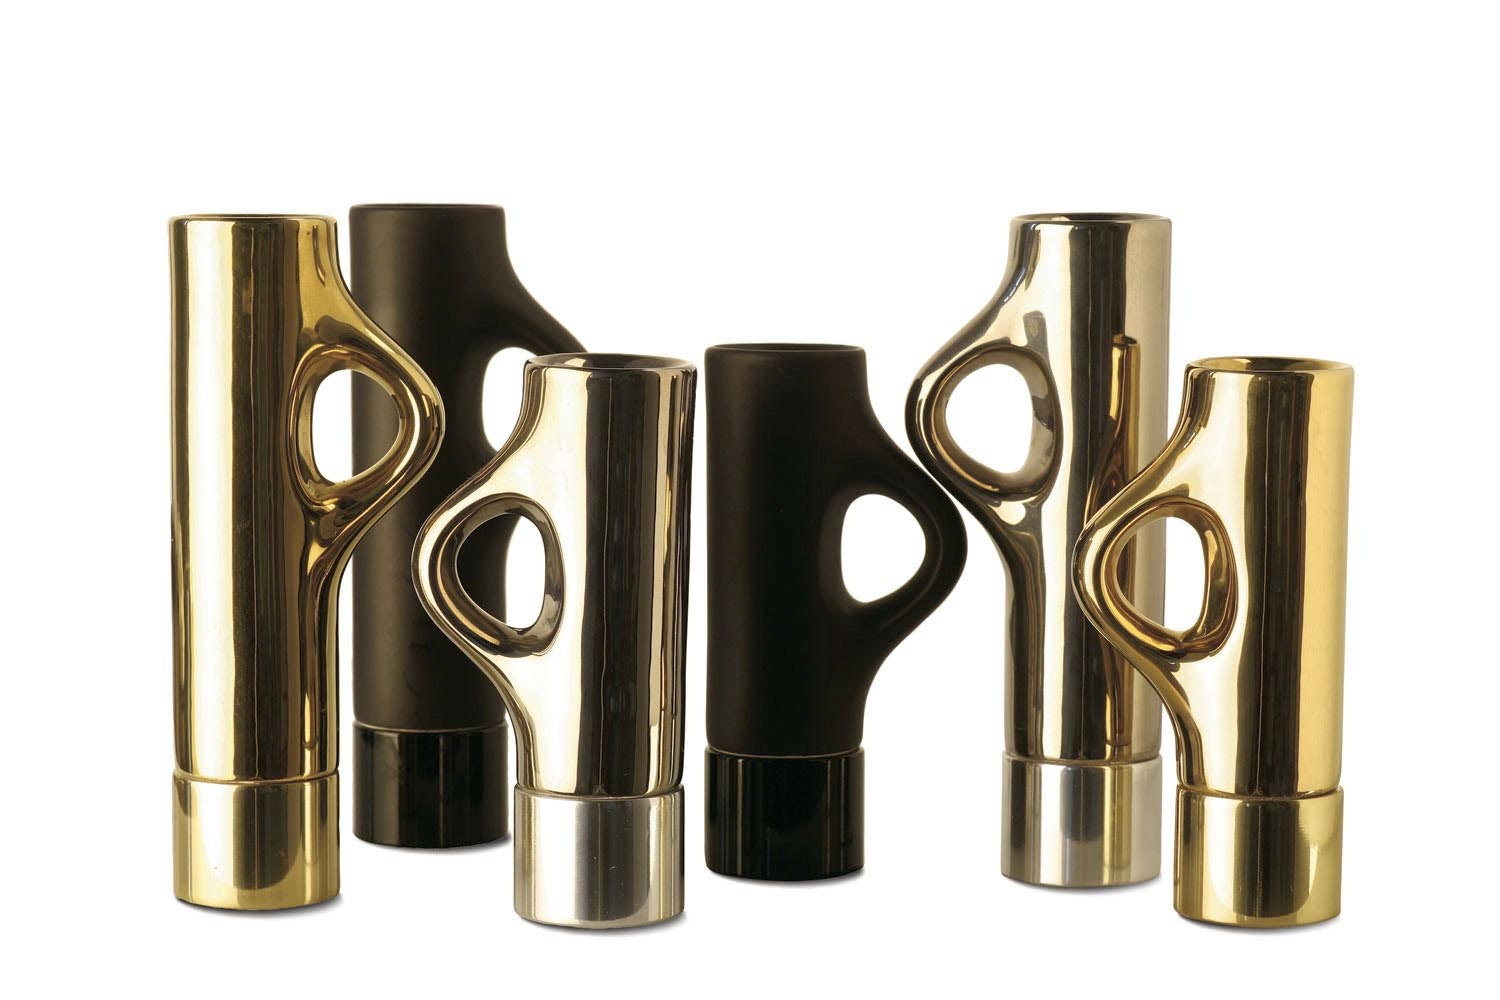 Lys Candle Holder by Jakob Wagner for B&B Italia